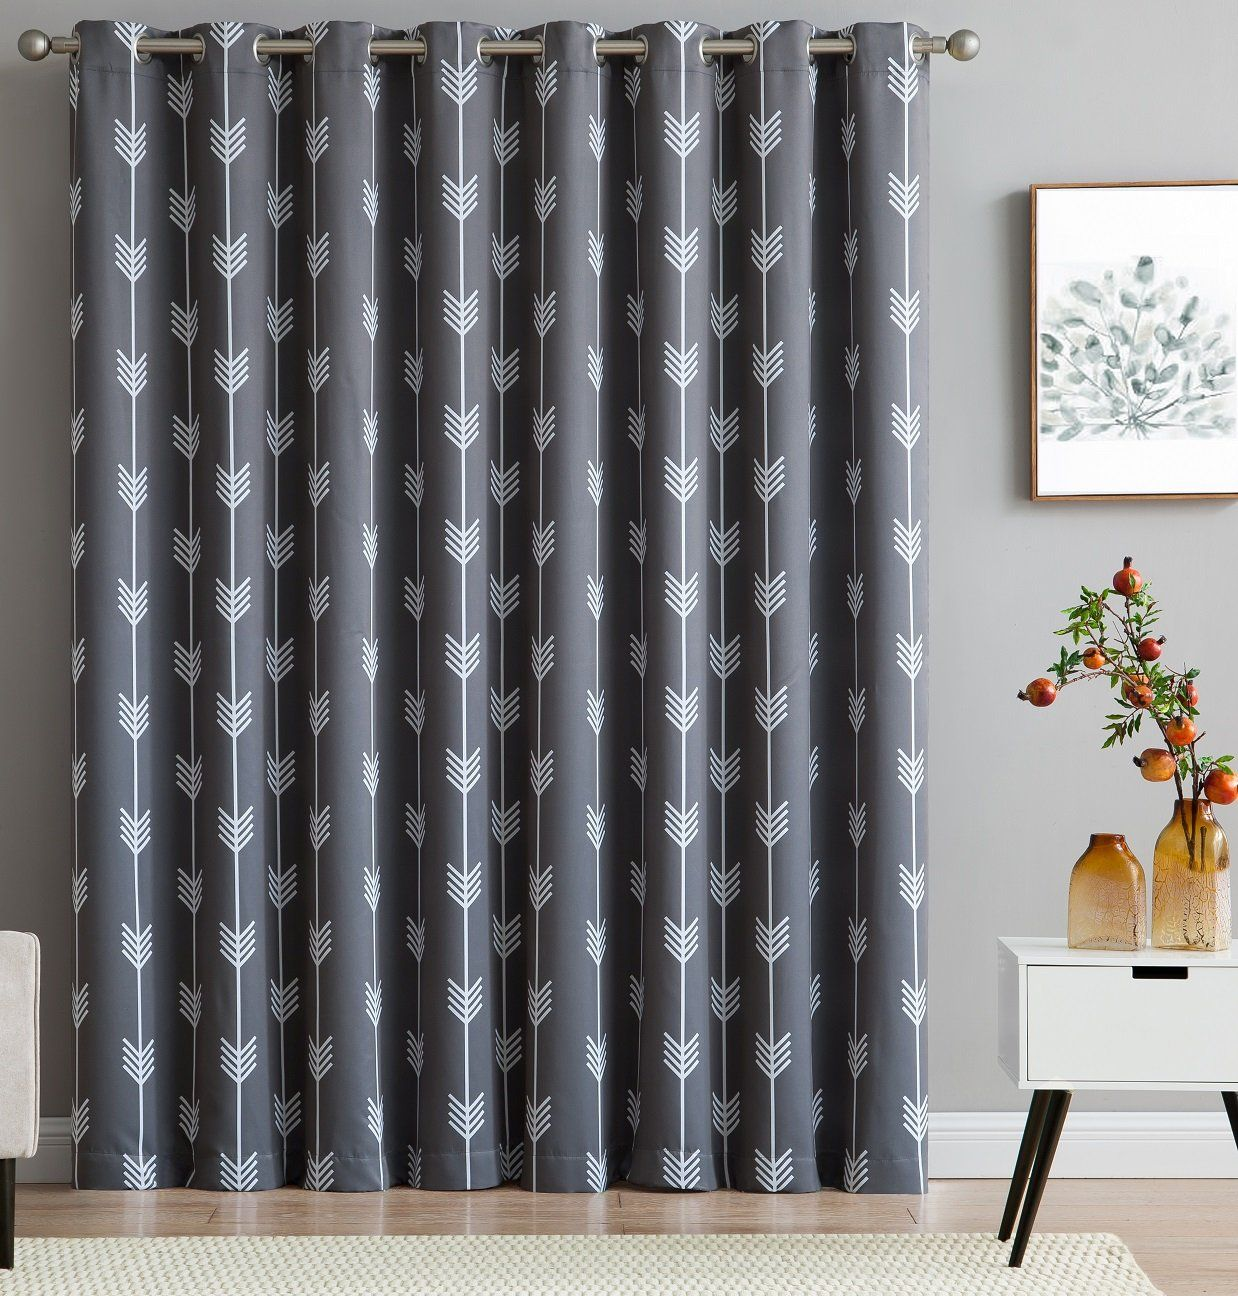 Thermal Patio Door Curtains With Grommets Hlc Me Arrow Print Thermal Grommet Blackout Patio Door Curtain For